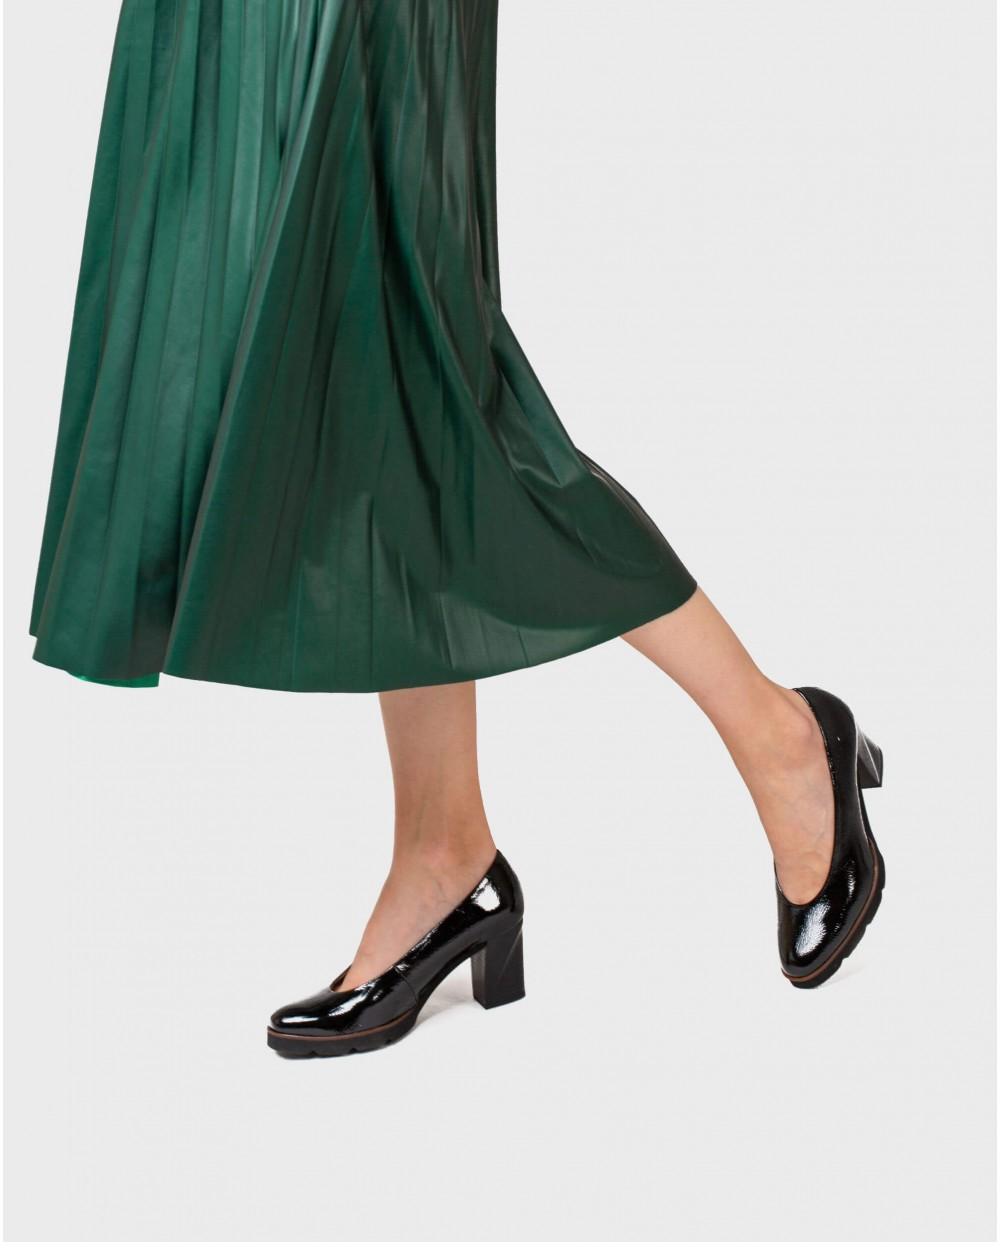 Wonders-Outlet-Patent leathe high heeled shoe